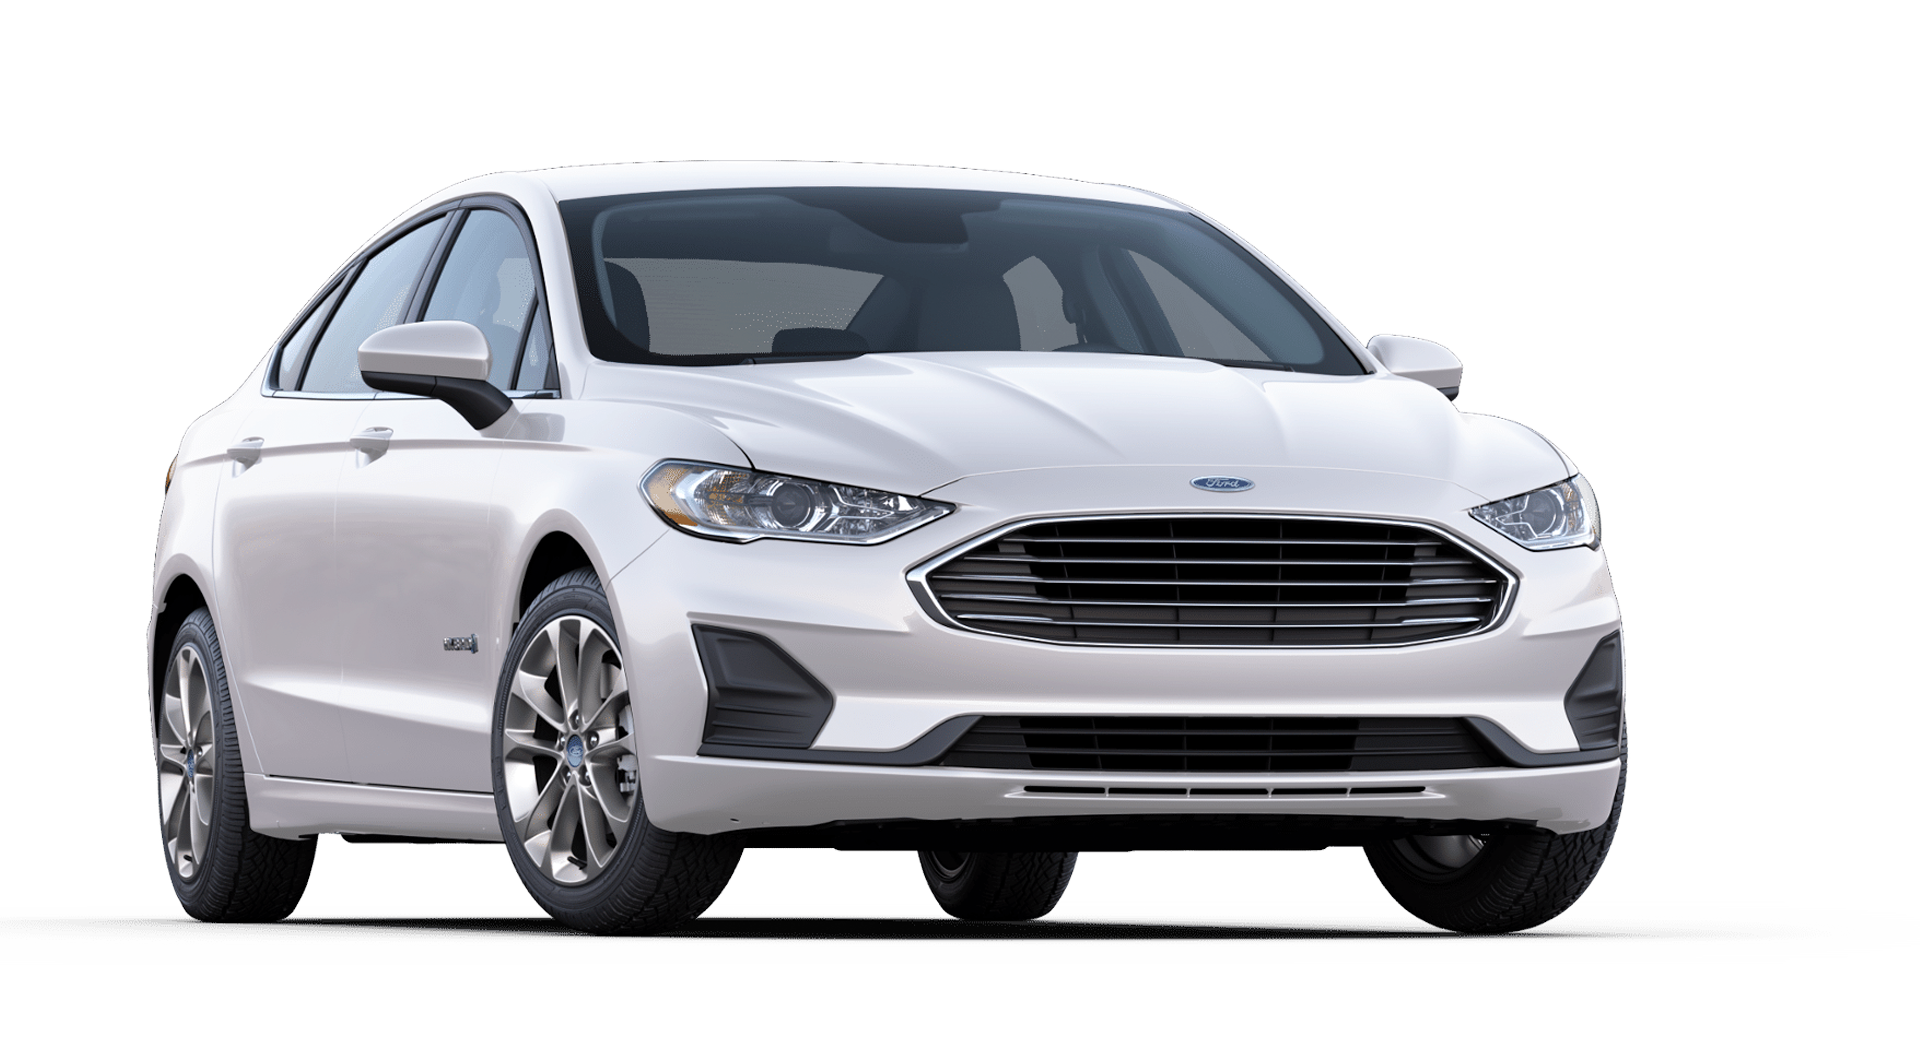 2018 Ford Fusion Hybrid - Shown